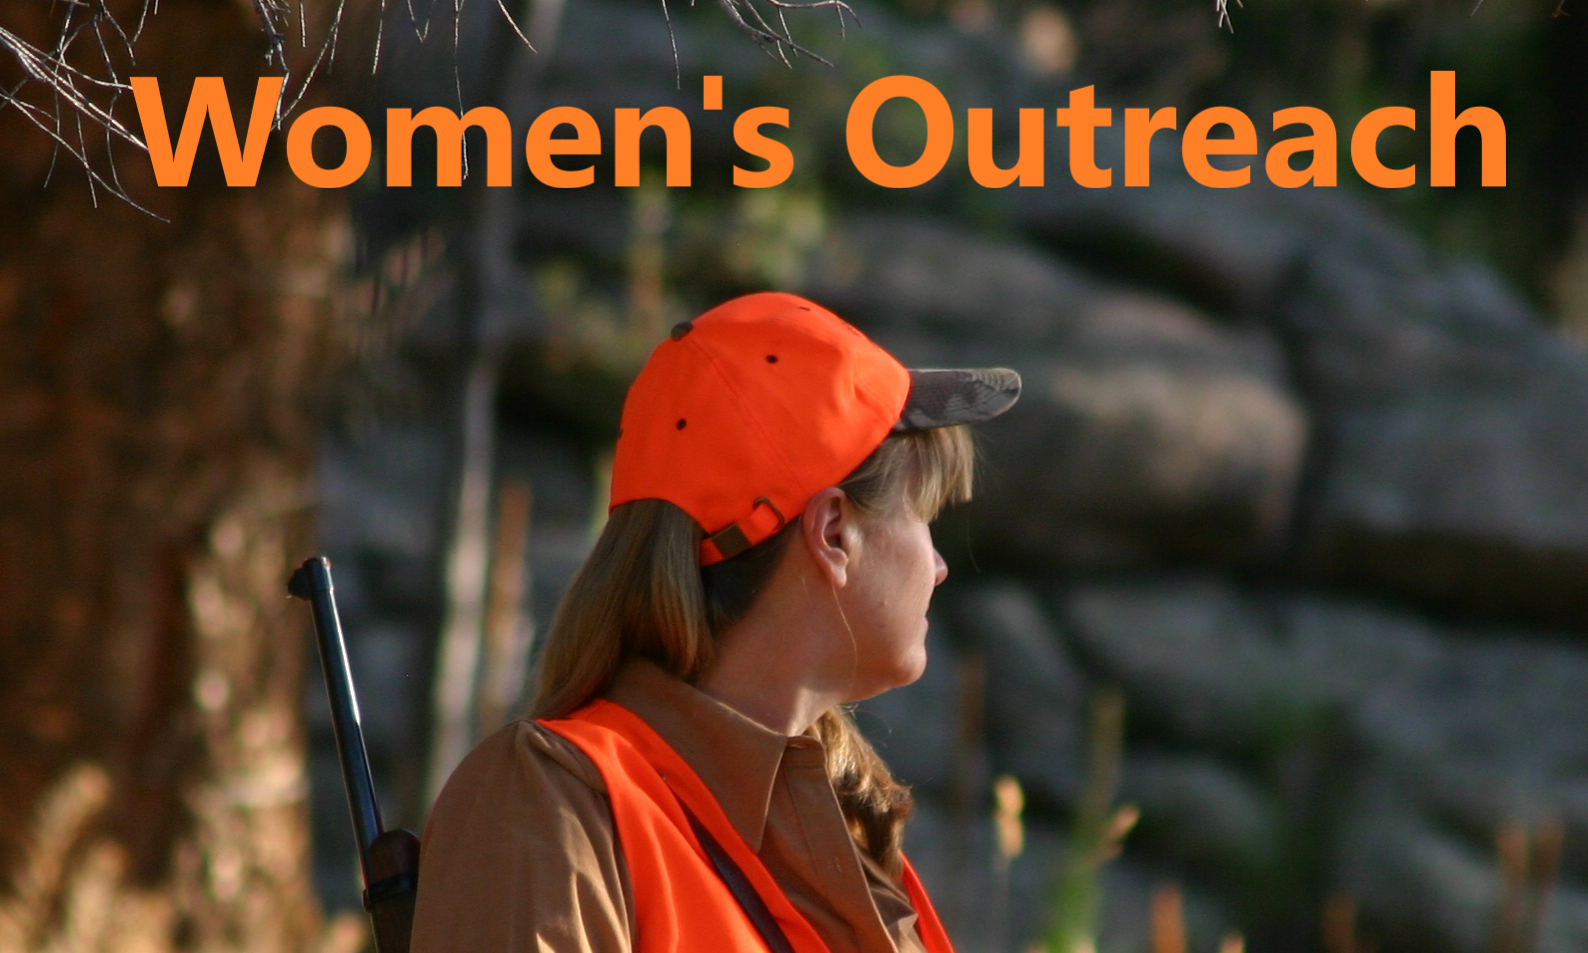 Women's Outreach